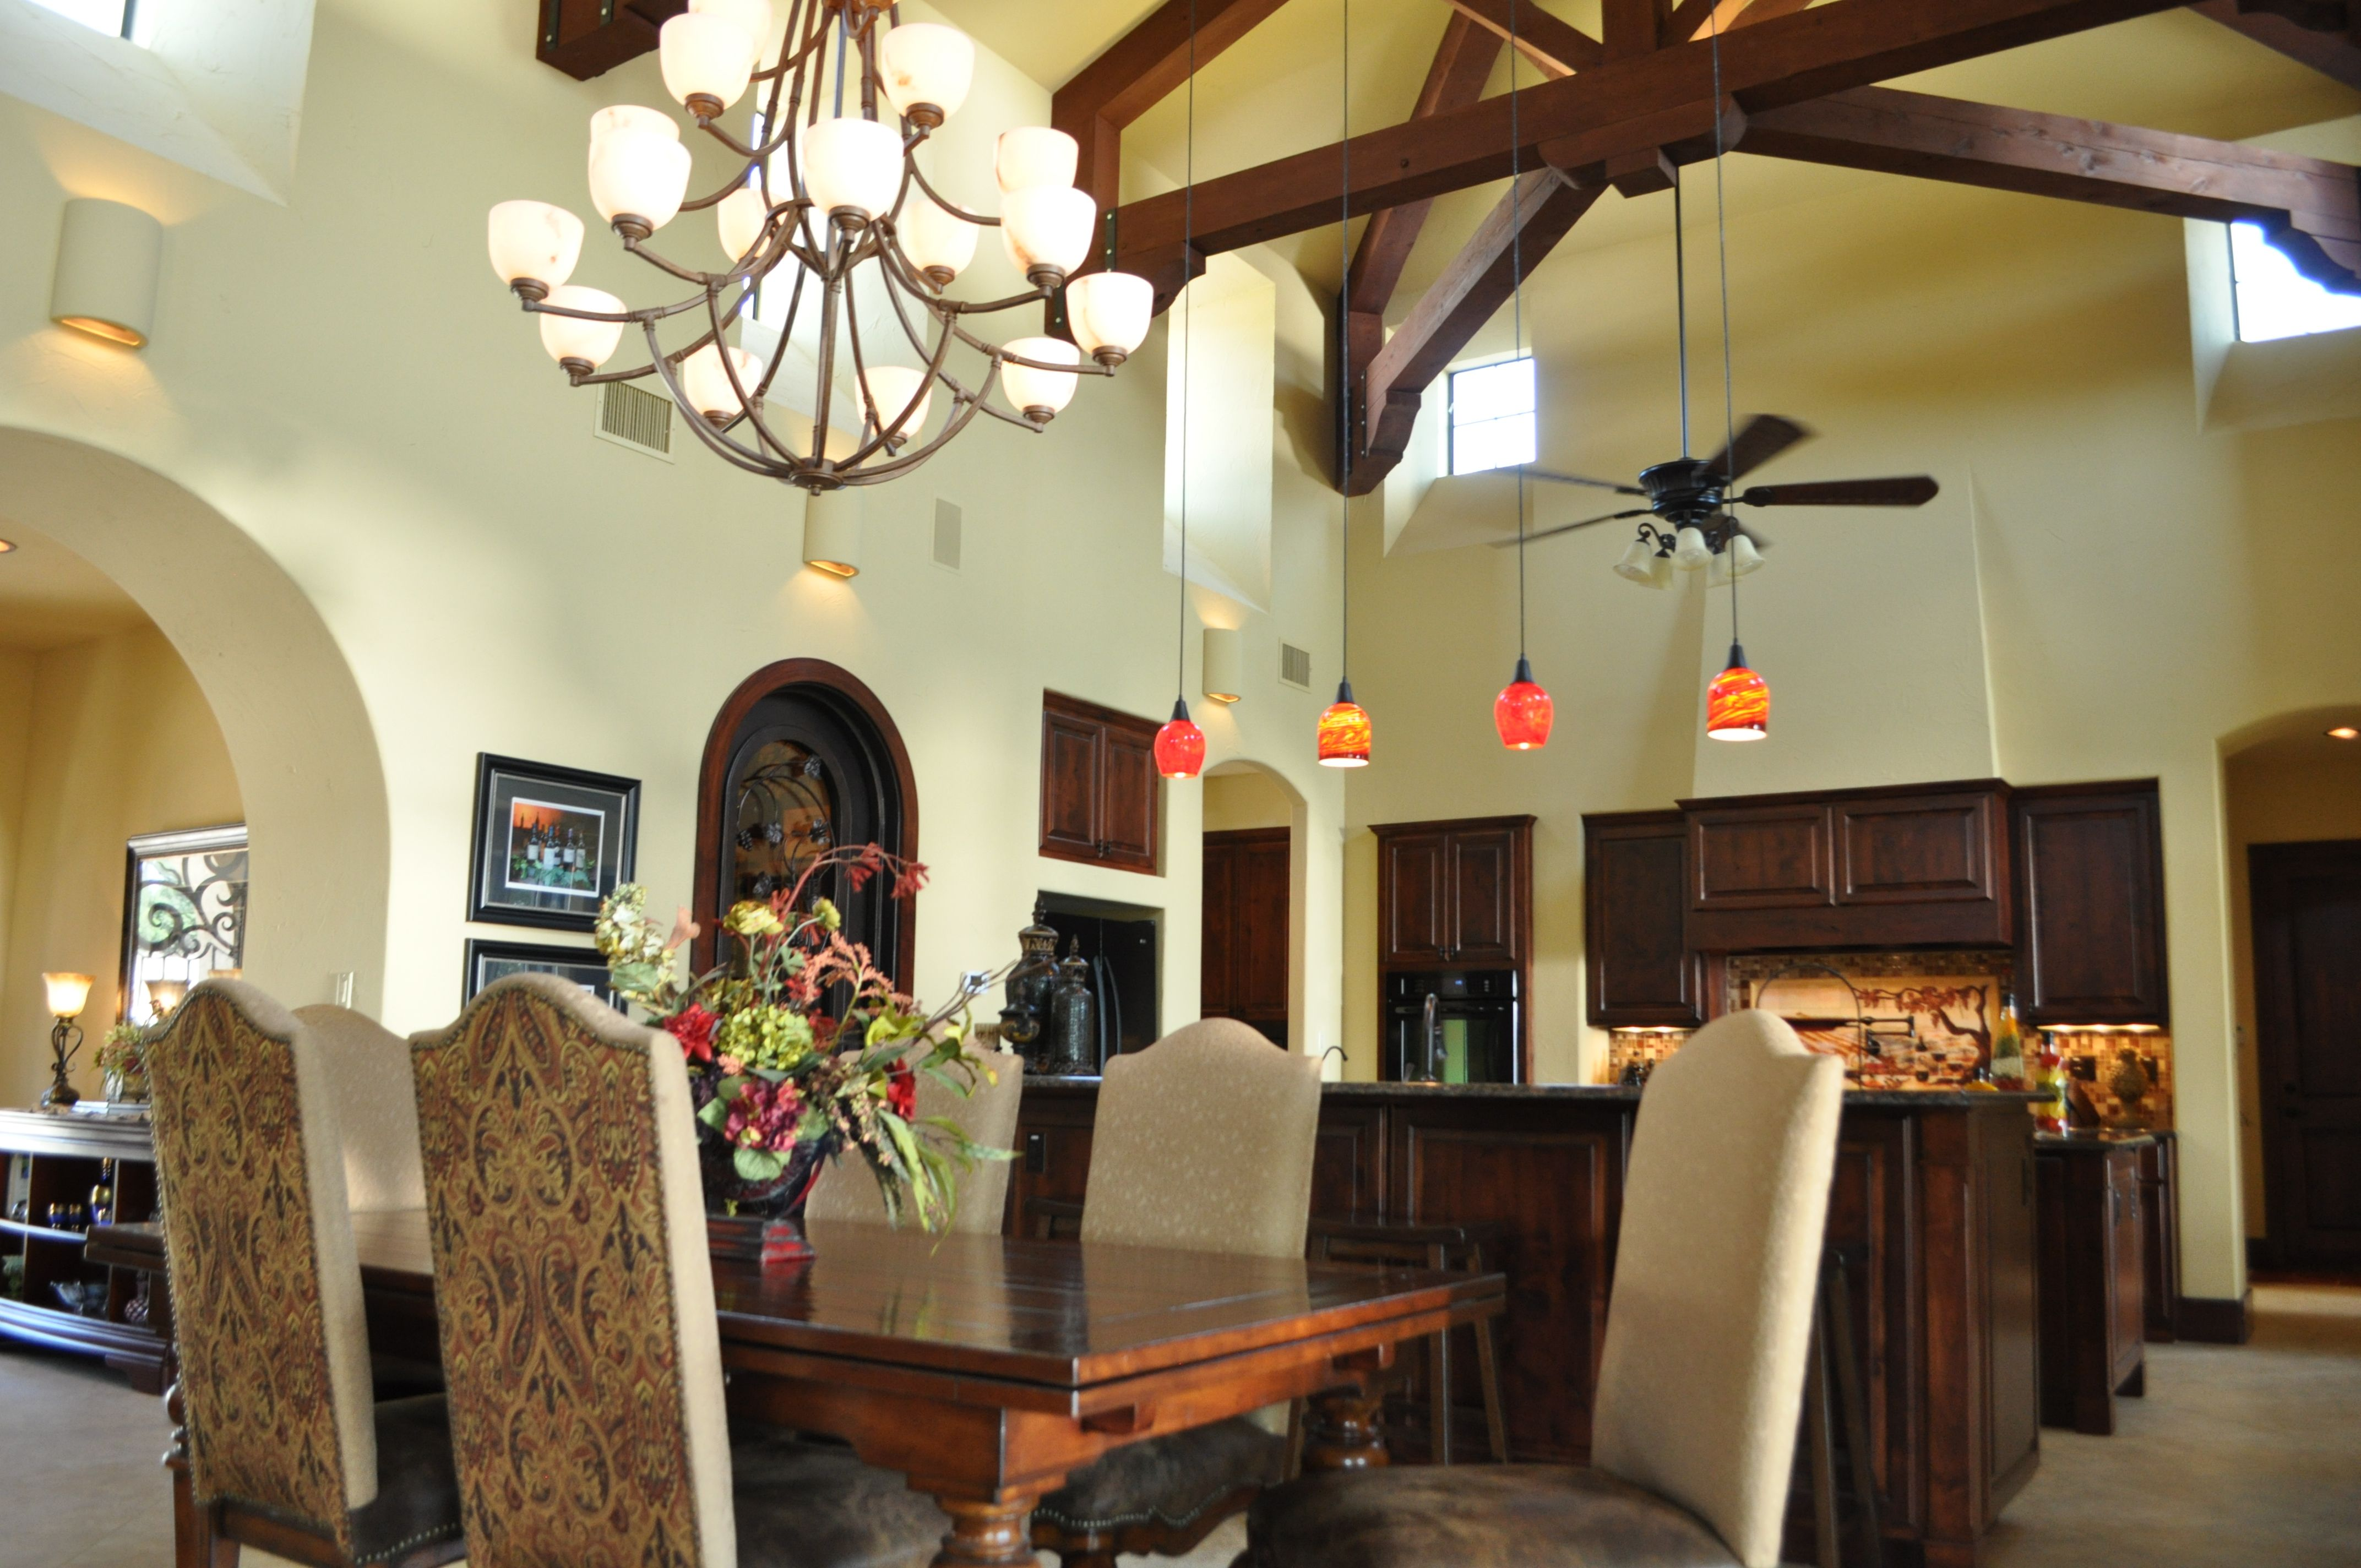 The chandelier and dining table define the dining area in the great room of this Tuscan style ...